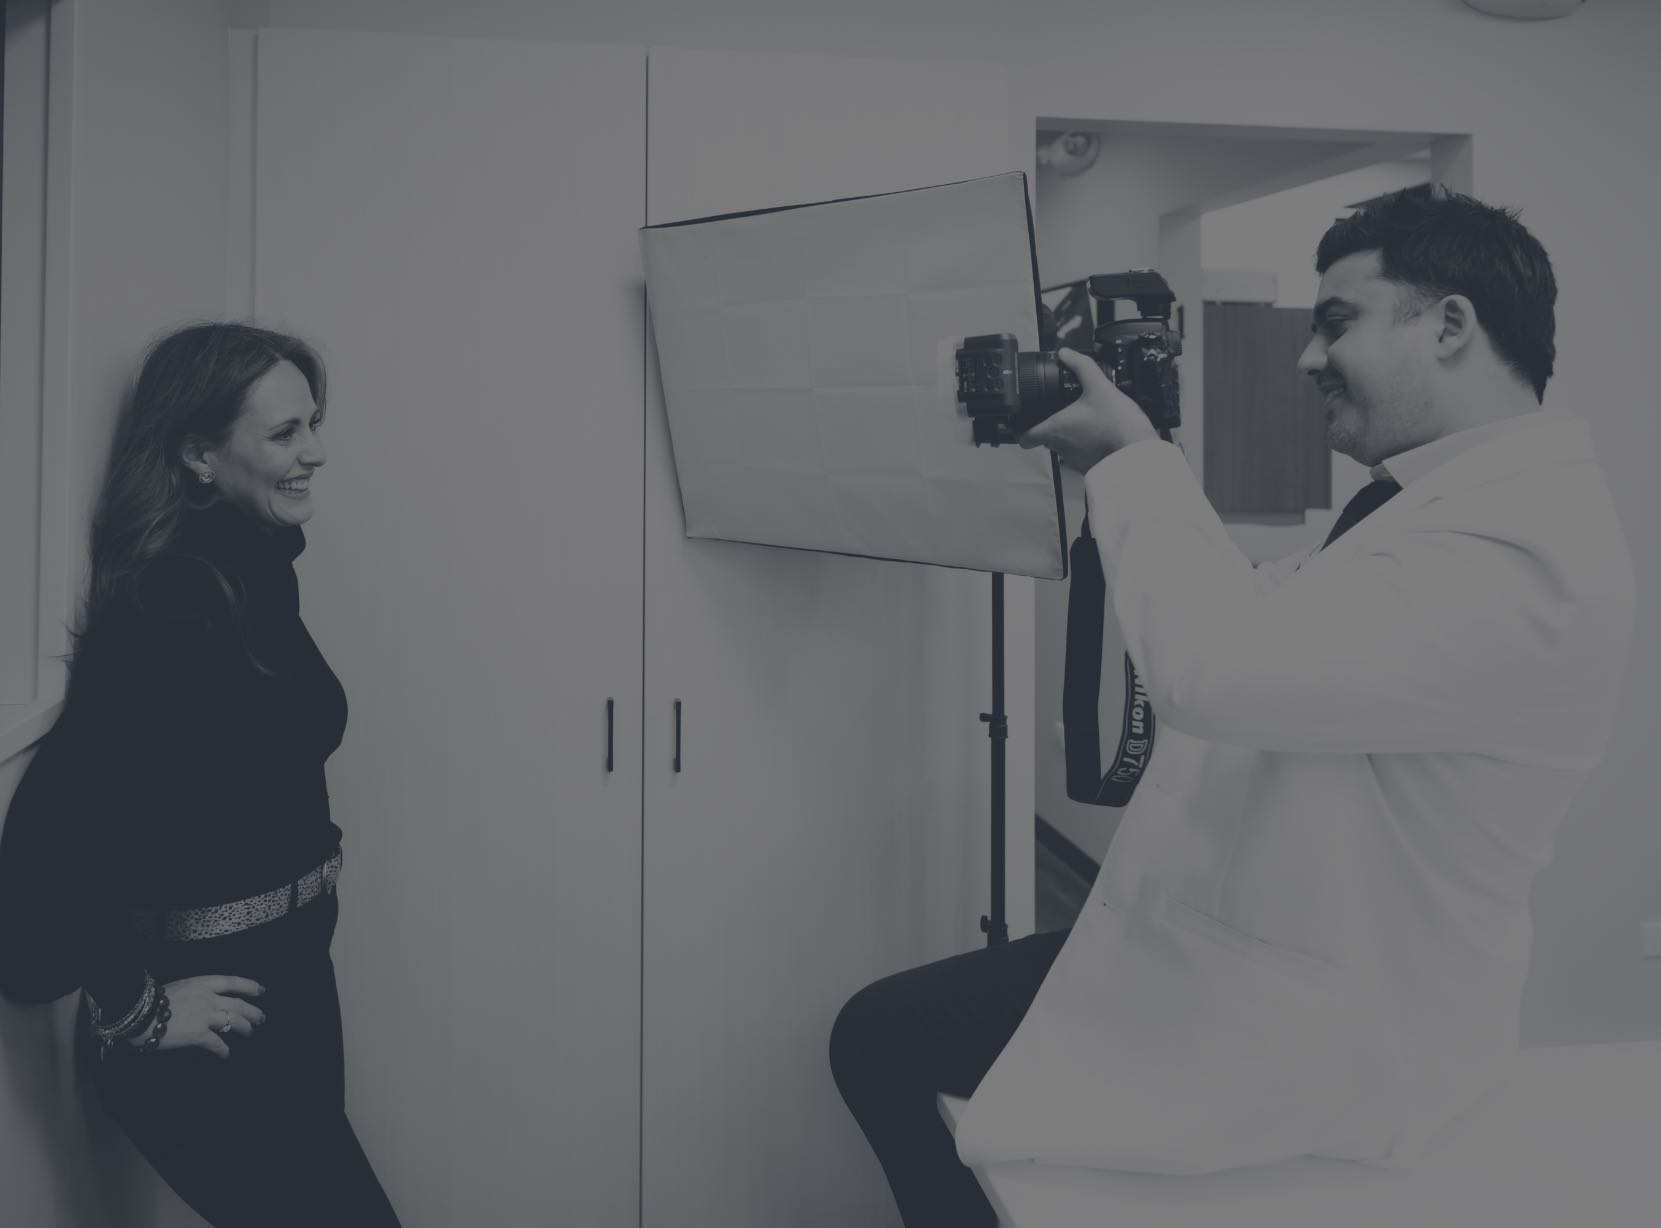 Dr. Sushant taking a photo of a smiling patient